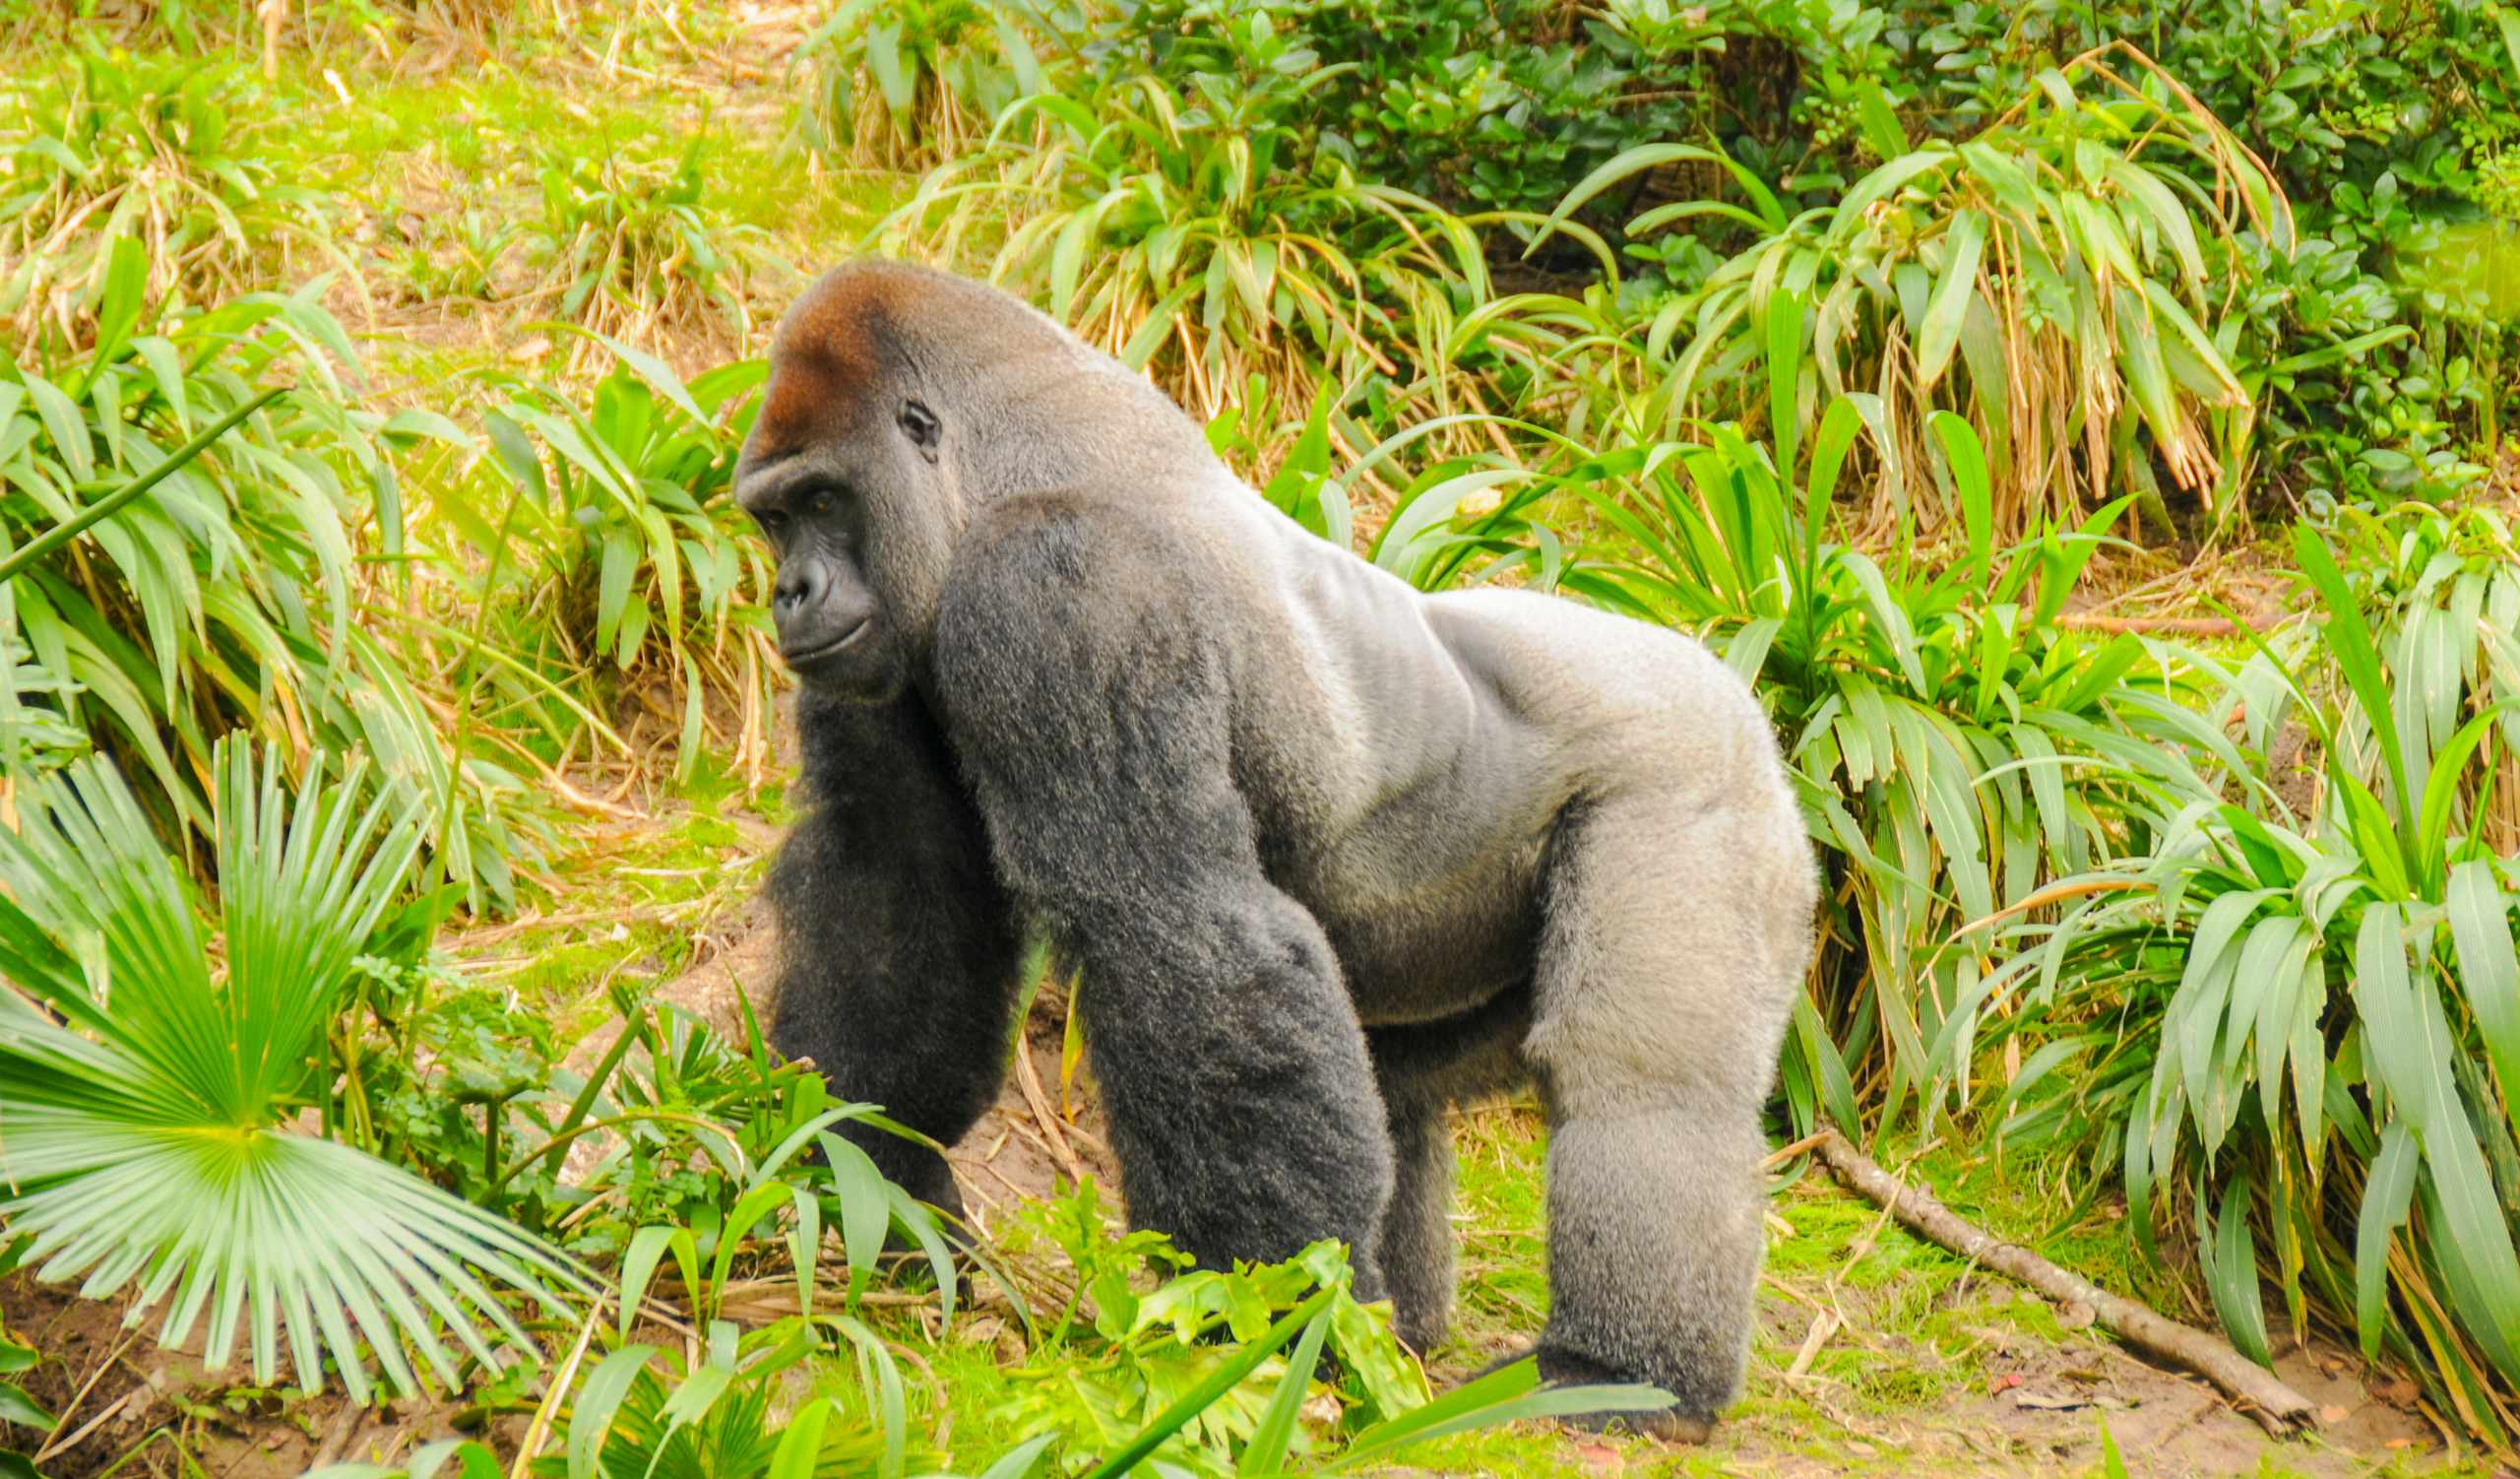 View of a Silverback (mature male) lowland gorilla © Elliot Hurwitt / Getty